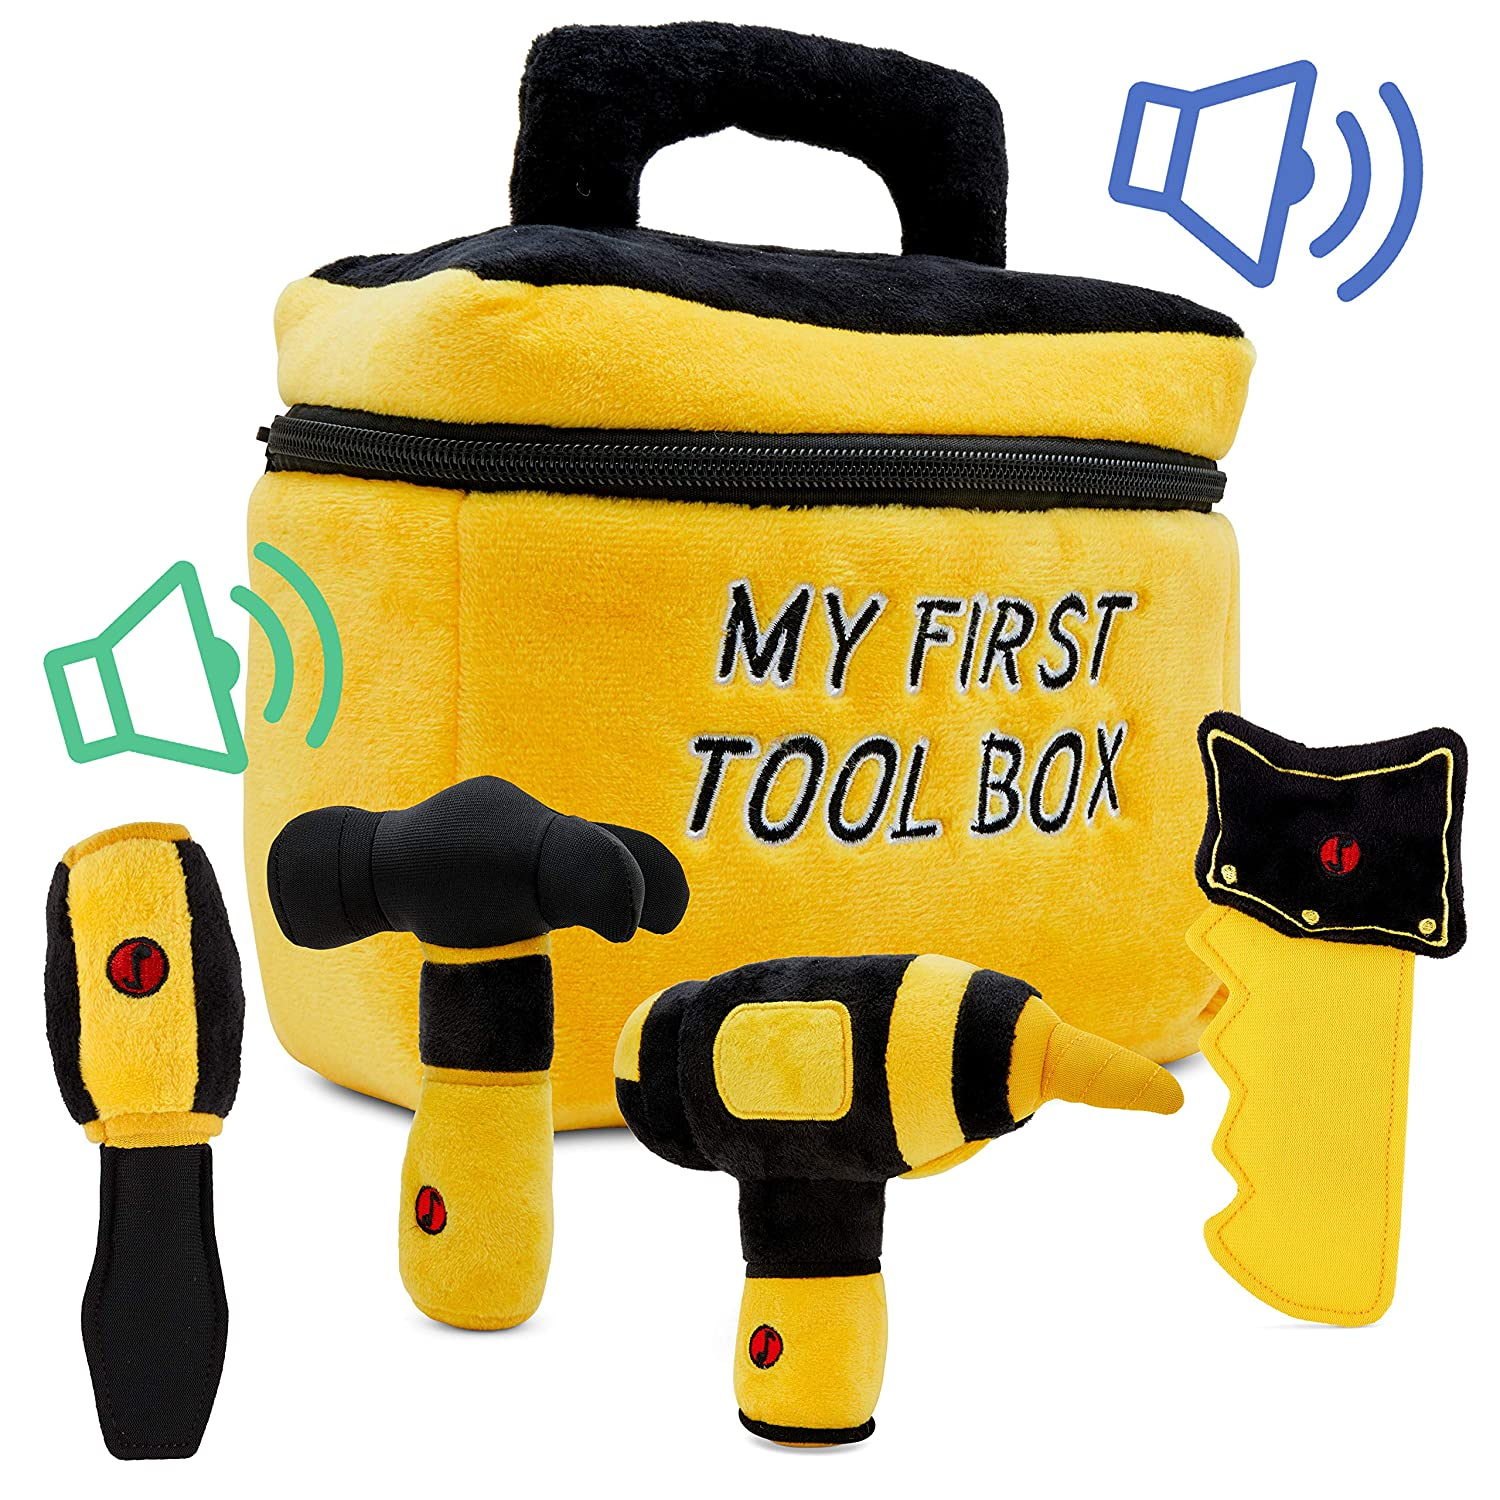 Toy Tool Set for Boys | Includes Cuddly Hammer, Handsaw, Screwdriver, Hand Drill, & Zippered Tool Box with Cool Sounds | Soft Plush Toys Made from Durable & Hypoallergenic Fabric